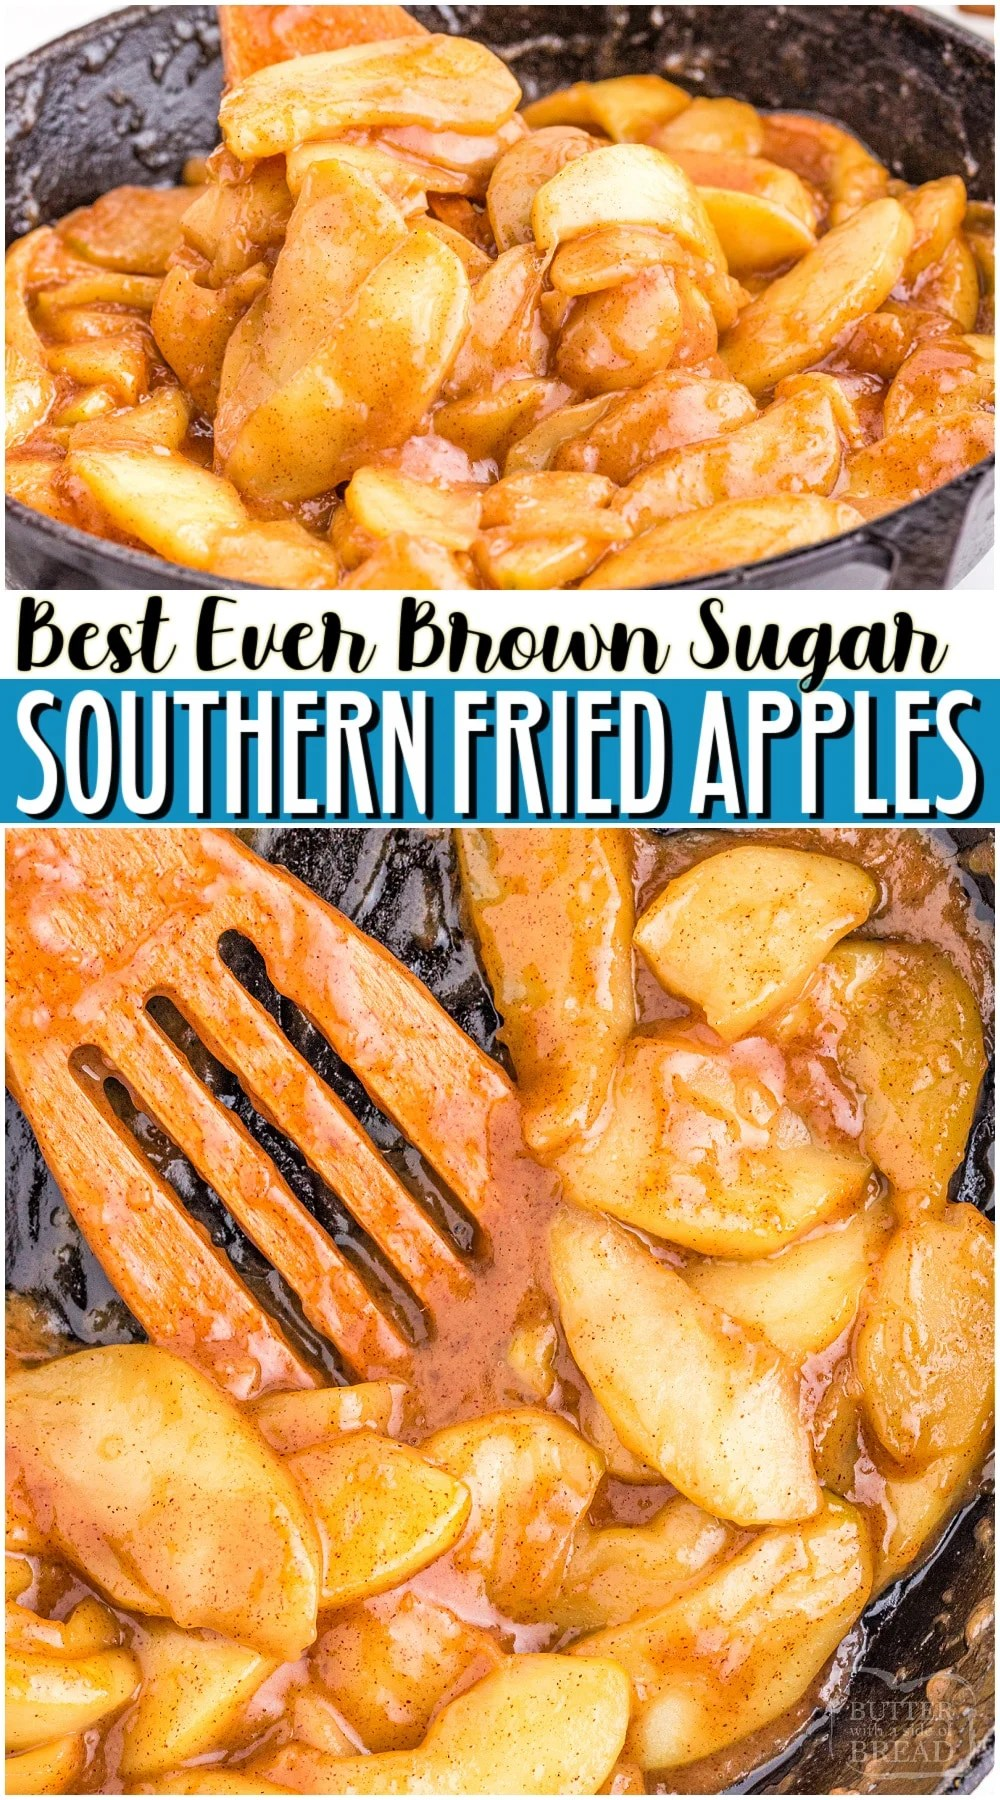 BROWN SUGAR Fried Apples made easy with crisp, fresh apples, butter, cinnamon & brown sugar! Favorite sweet southern fried apples served alongside dinner or with dessert. Perfect with a big scoop of vanilla ice cream.